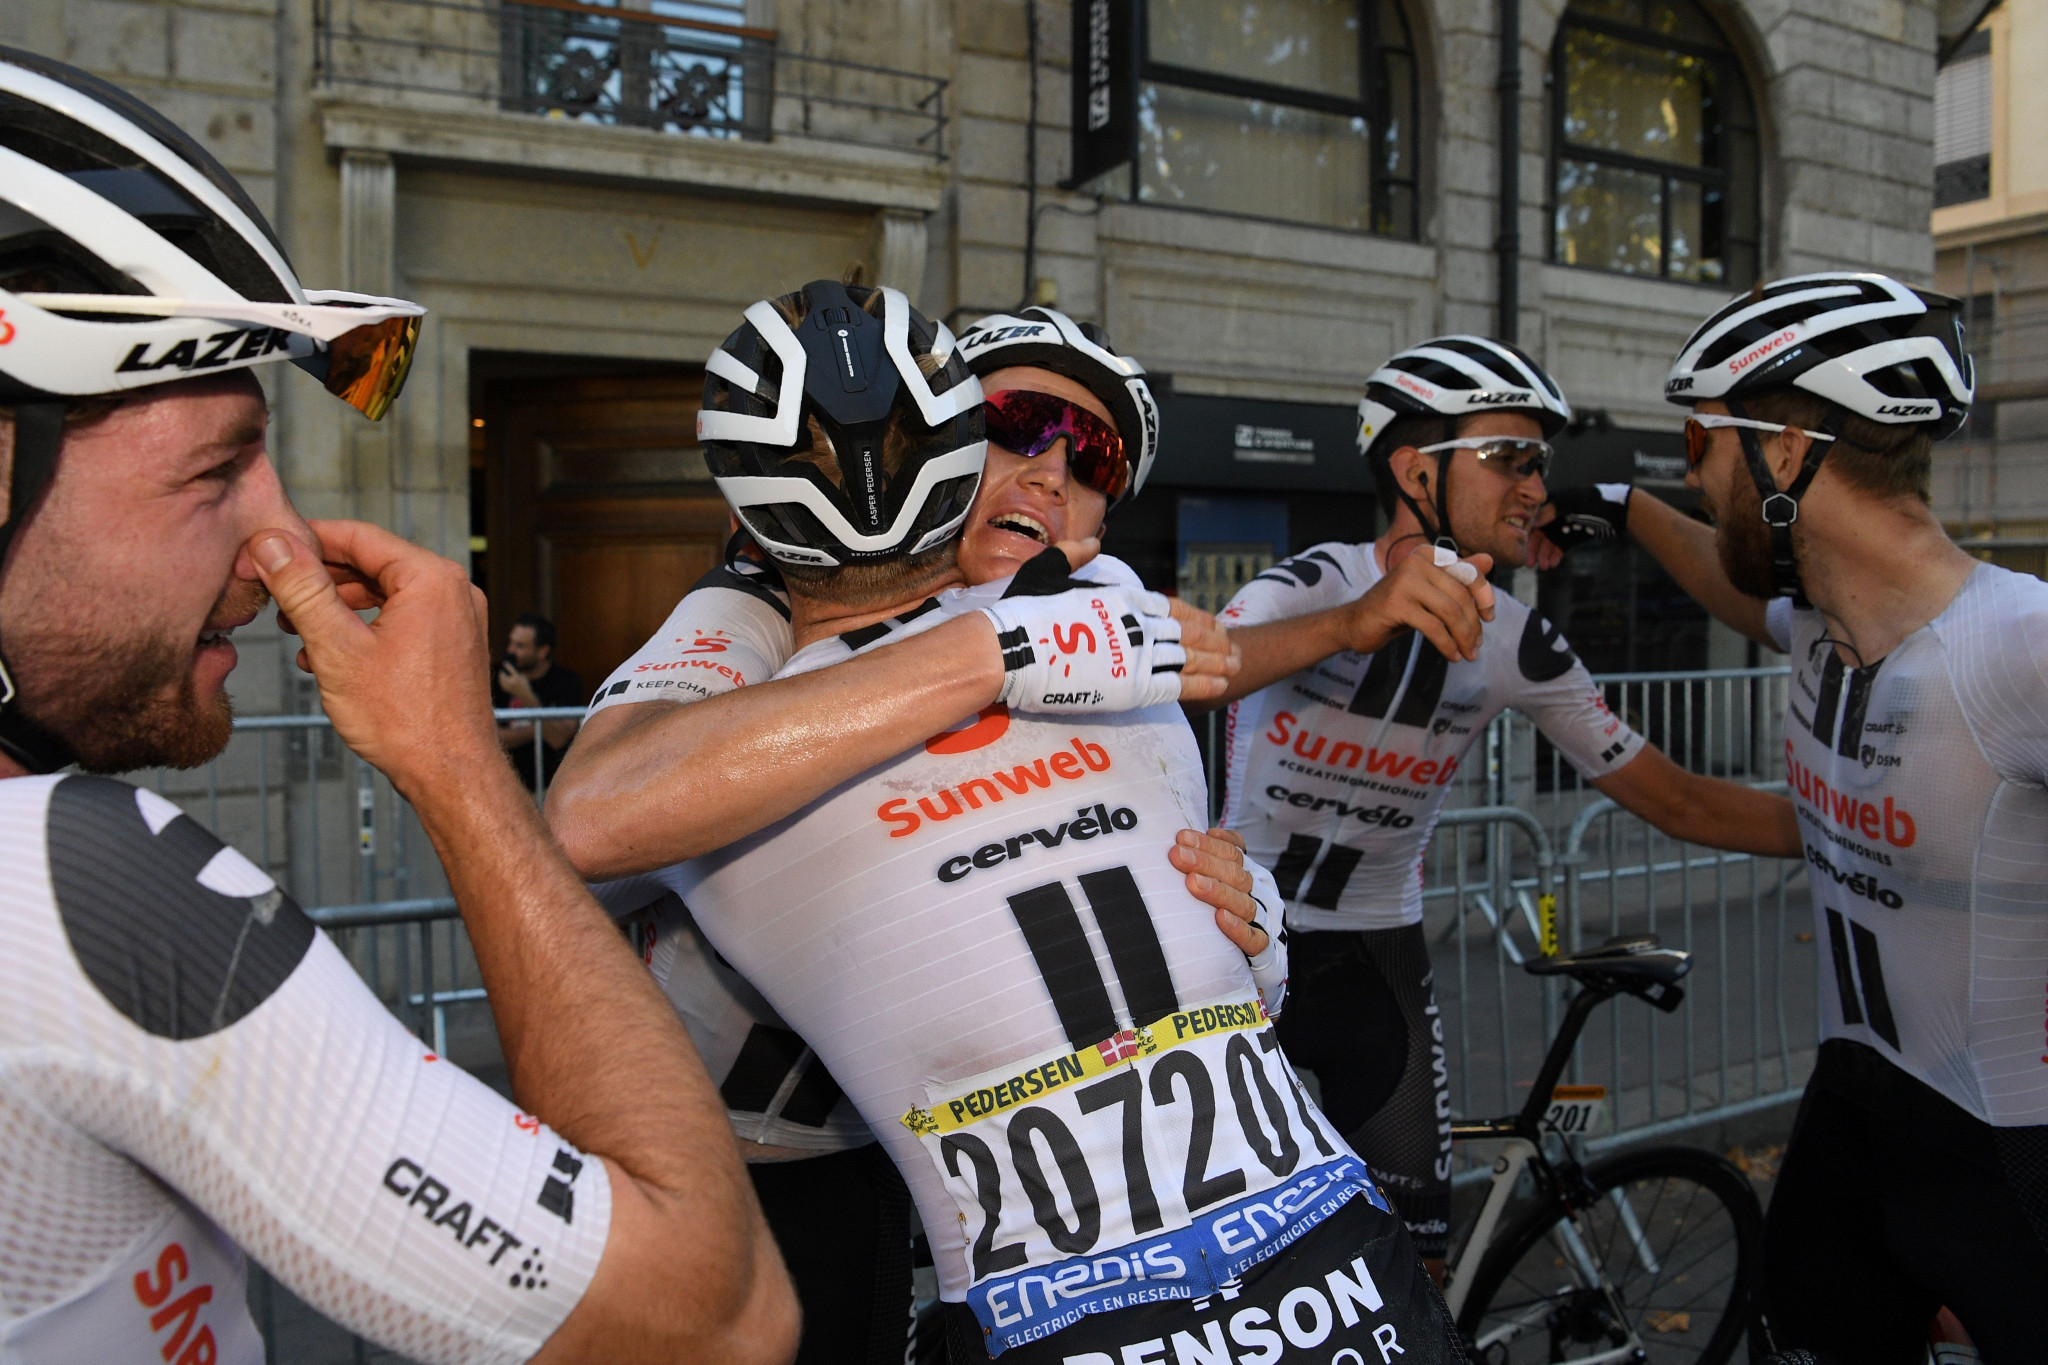 The Sunweb rider was congratulated by his team-mates at the finish ©Getty Images